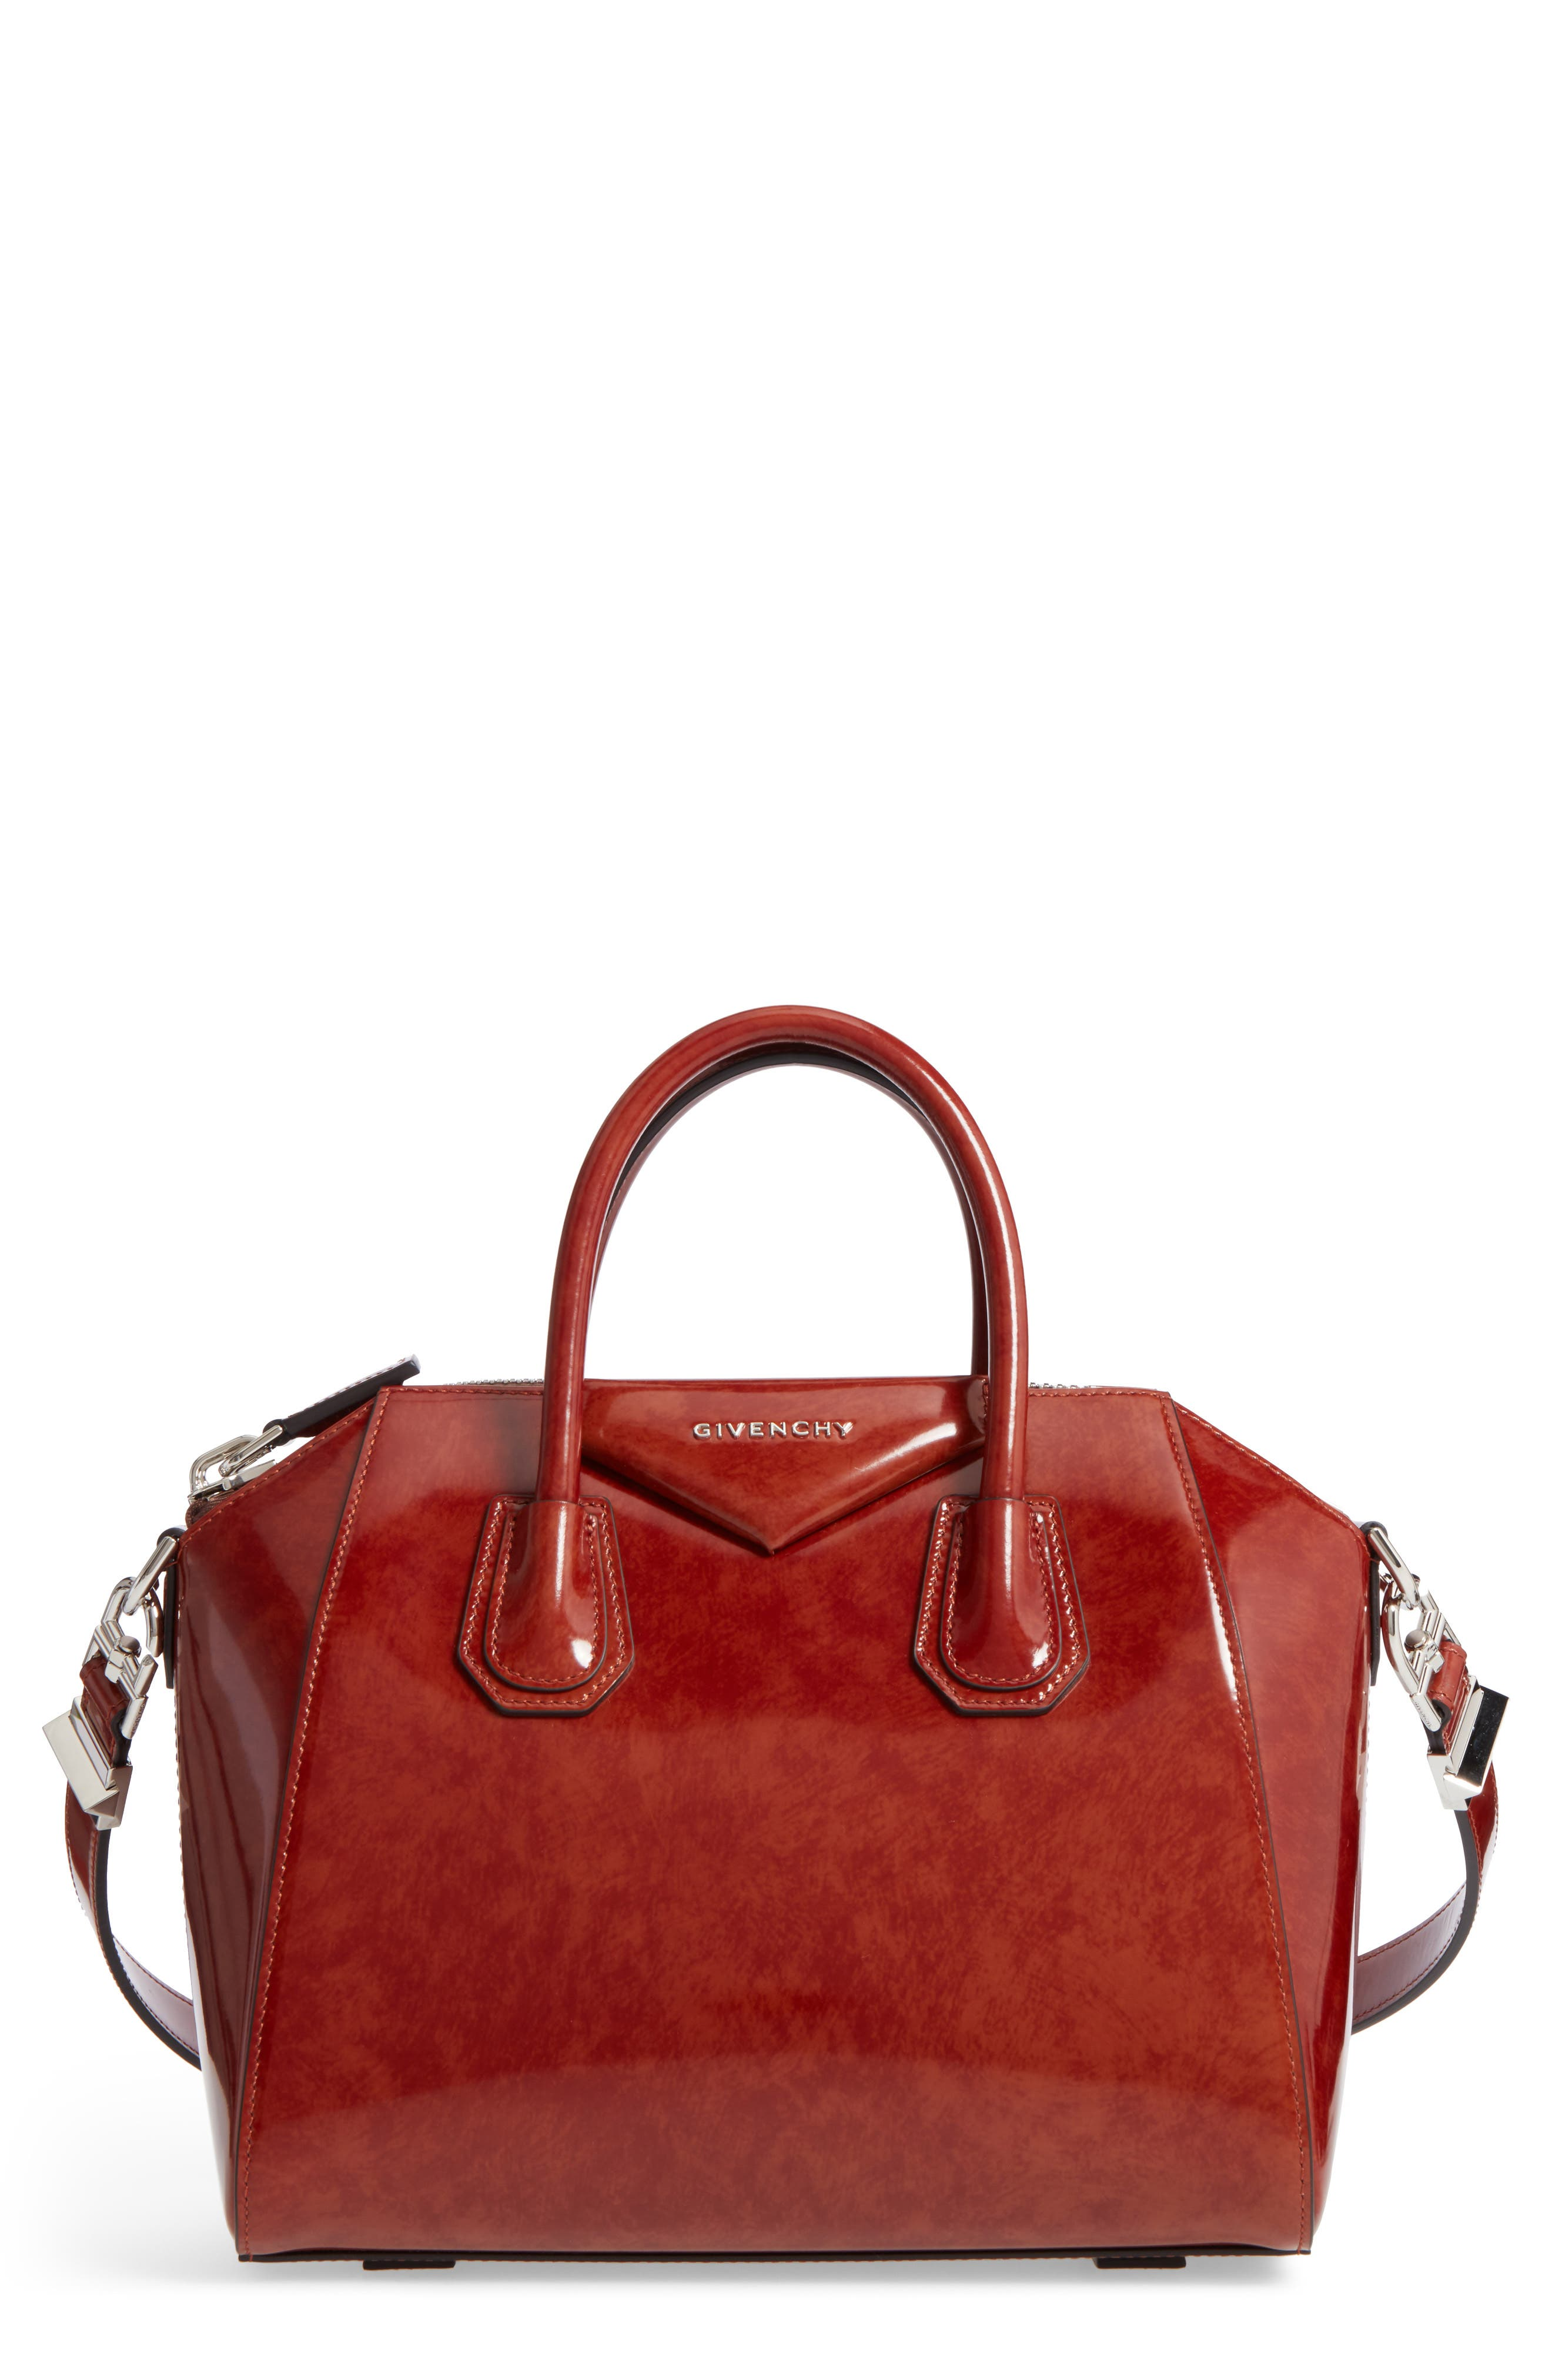 GIVENCHY Small Antigona Glazed Leather Satchel